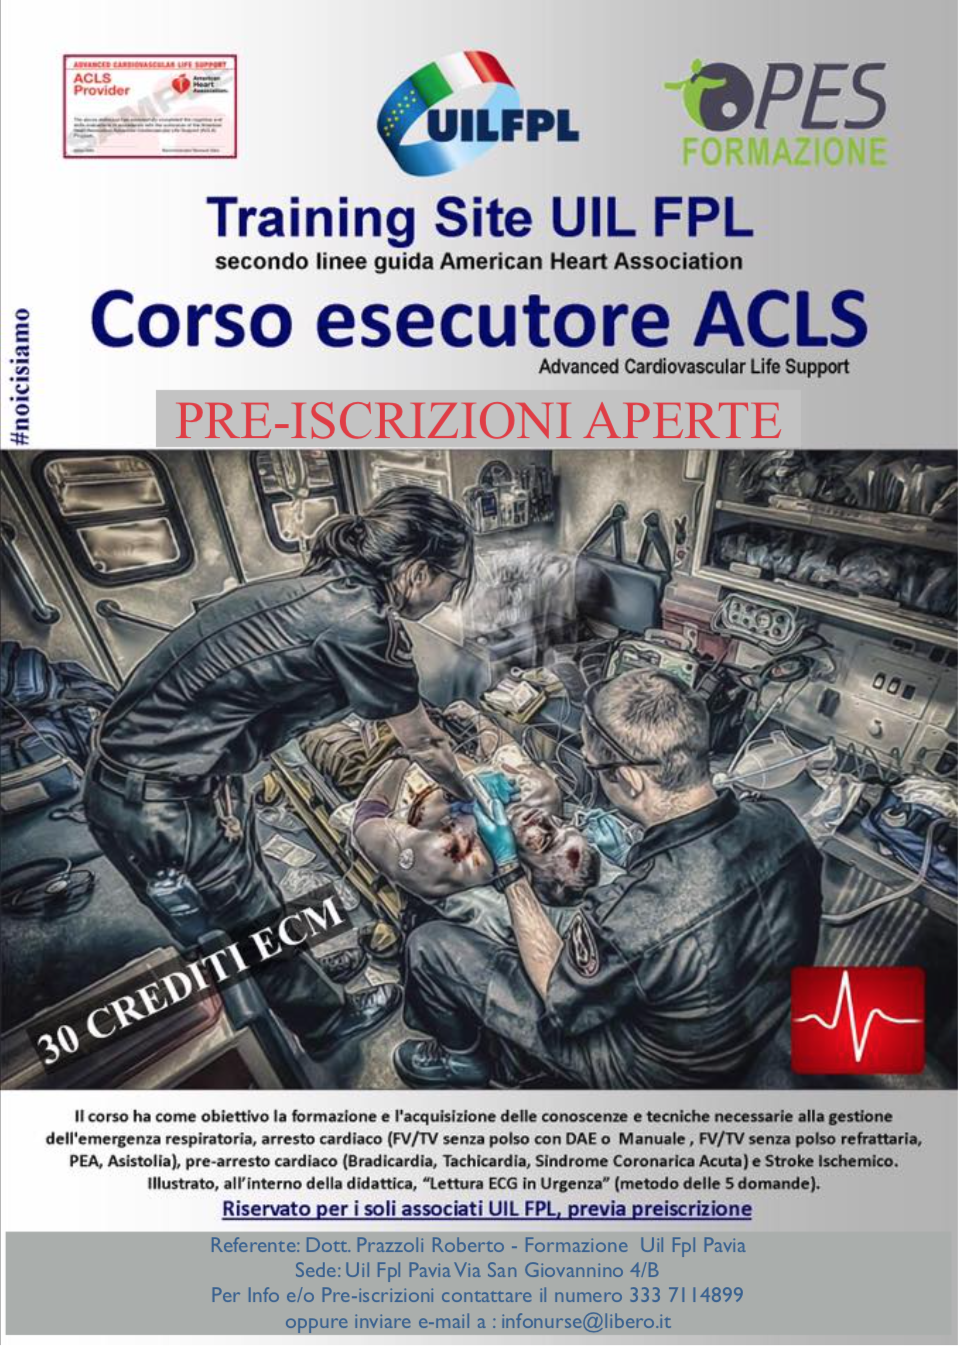 Corso esecutore ACLS - Advanced Cardiovascular Life Support